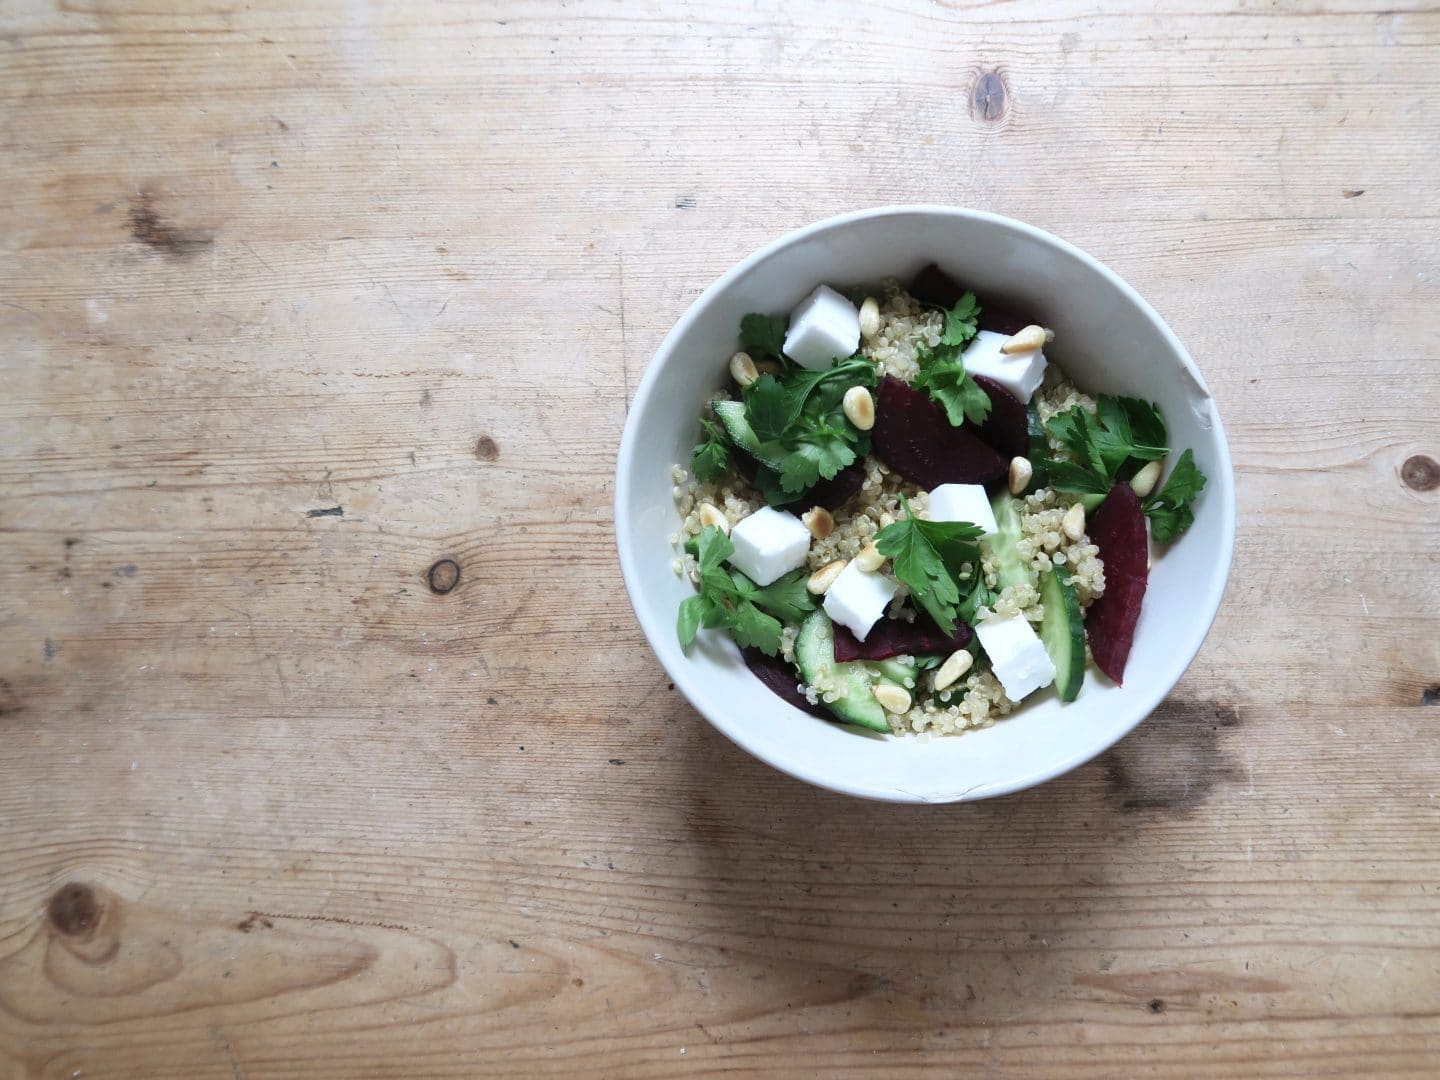 Vegan Feta Winter Salad Recipe | Curiously Conscious